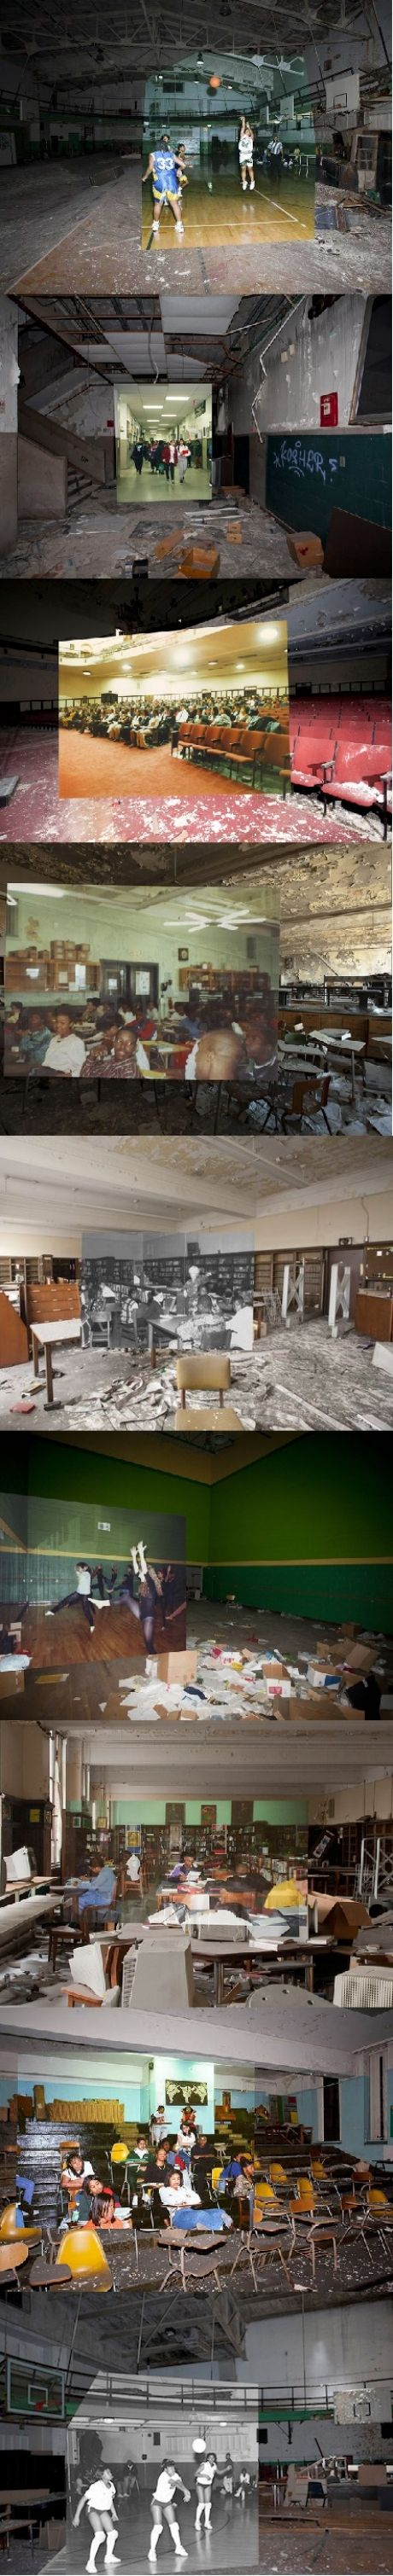 Detroit before and after.